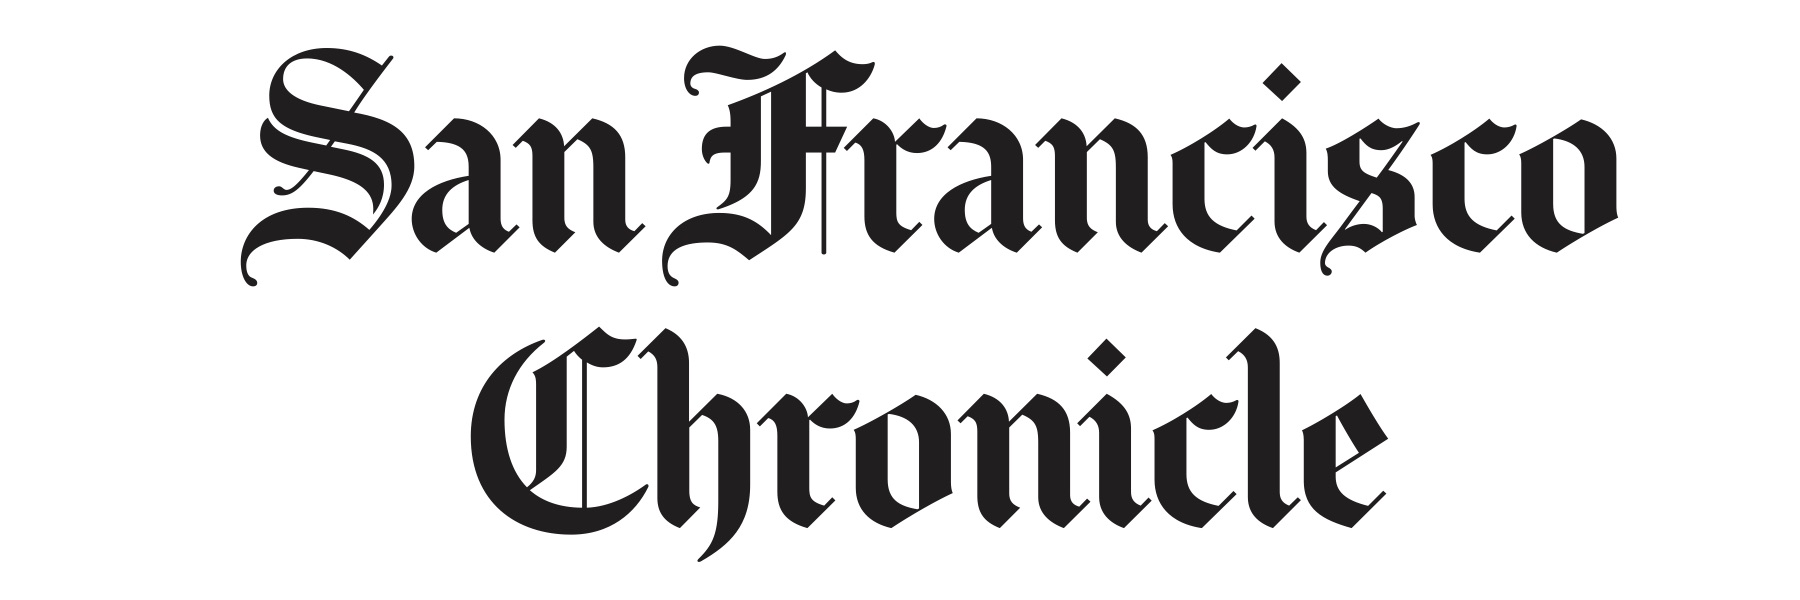 sfchronicle-stacked.jpg